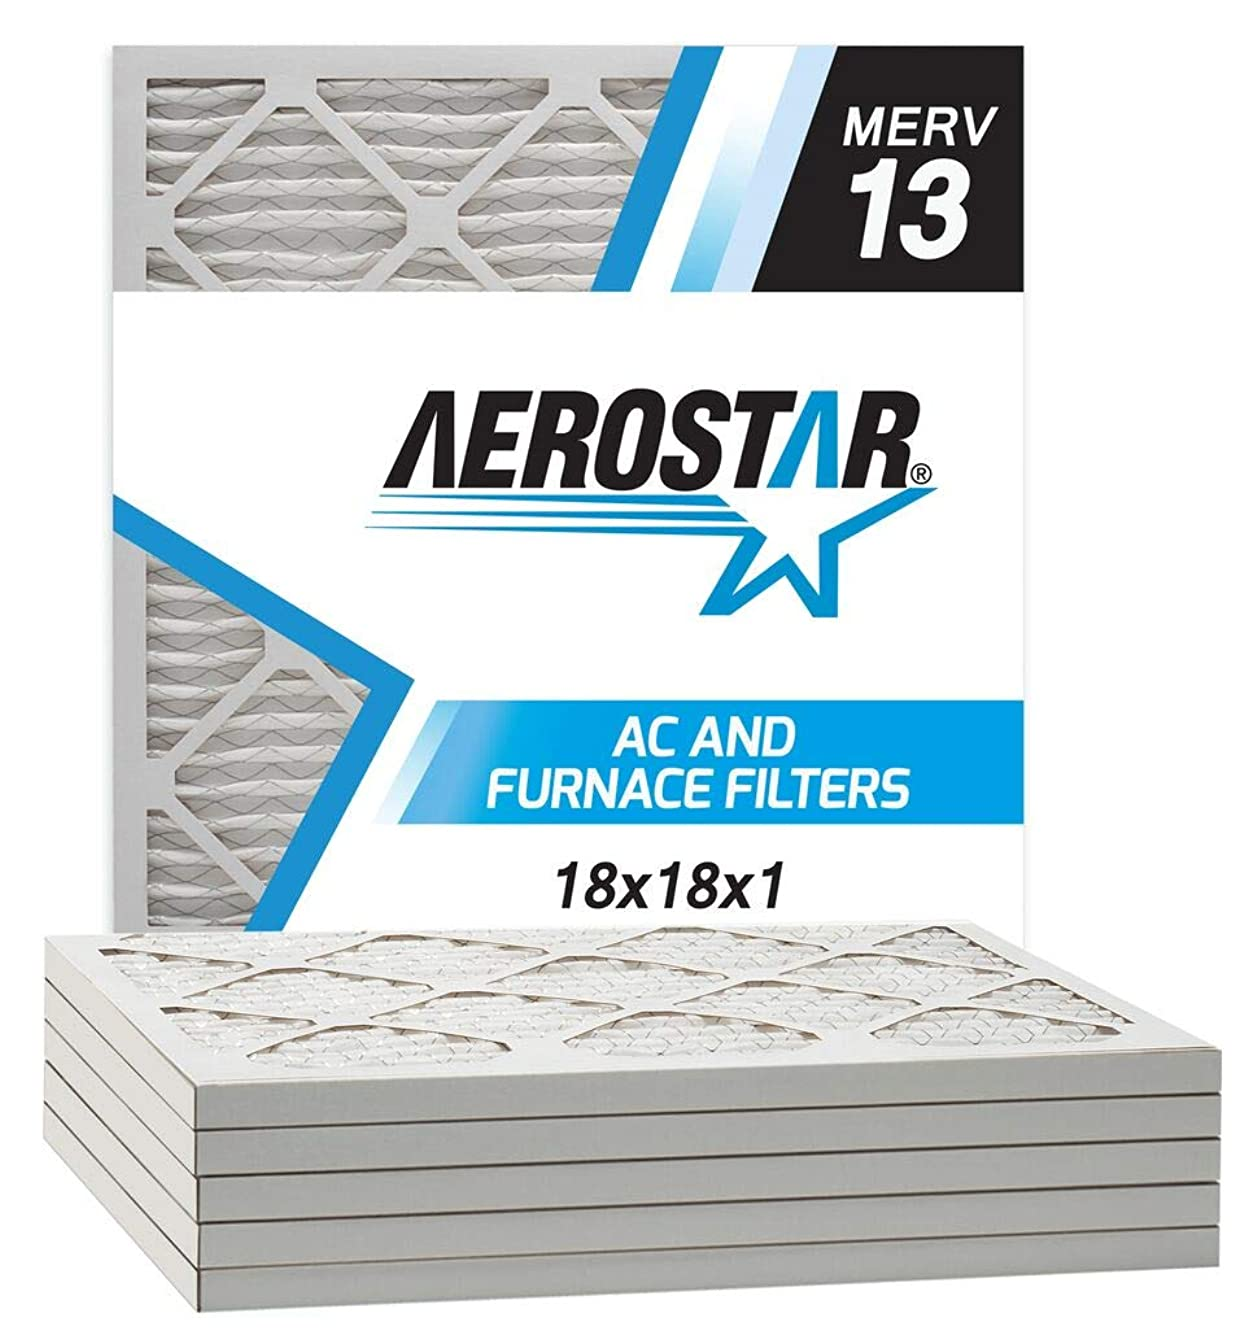 Aerostar 18x18x1 MERV 13 Pleated Air Filter, Made in the USA, 6-Pack